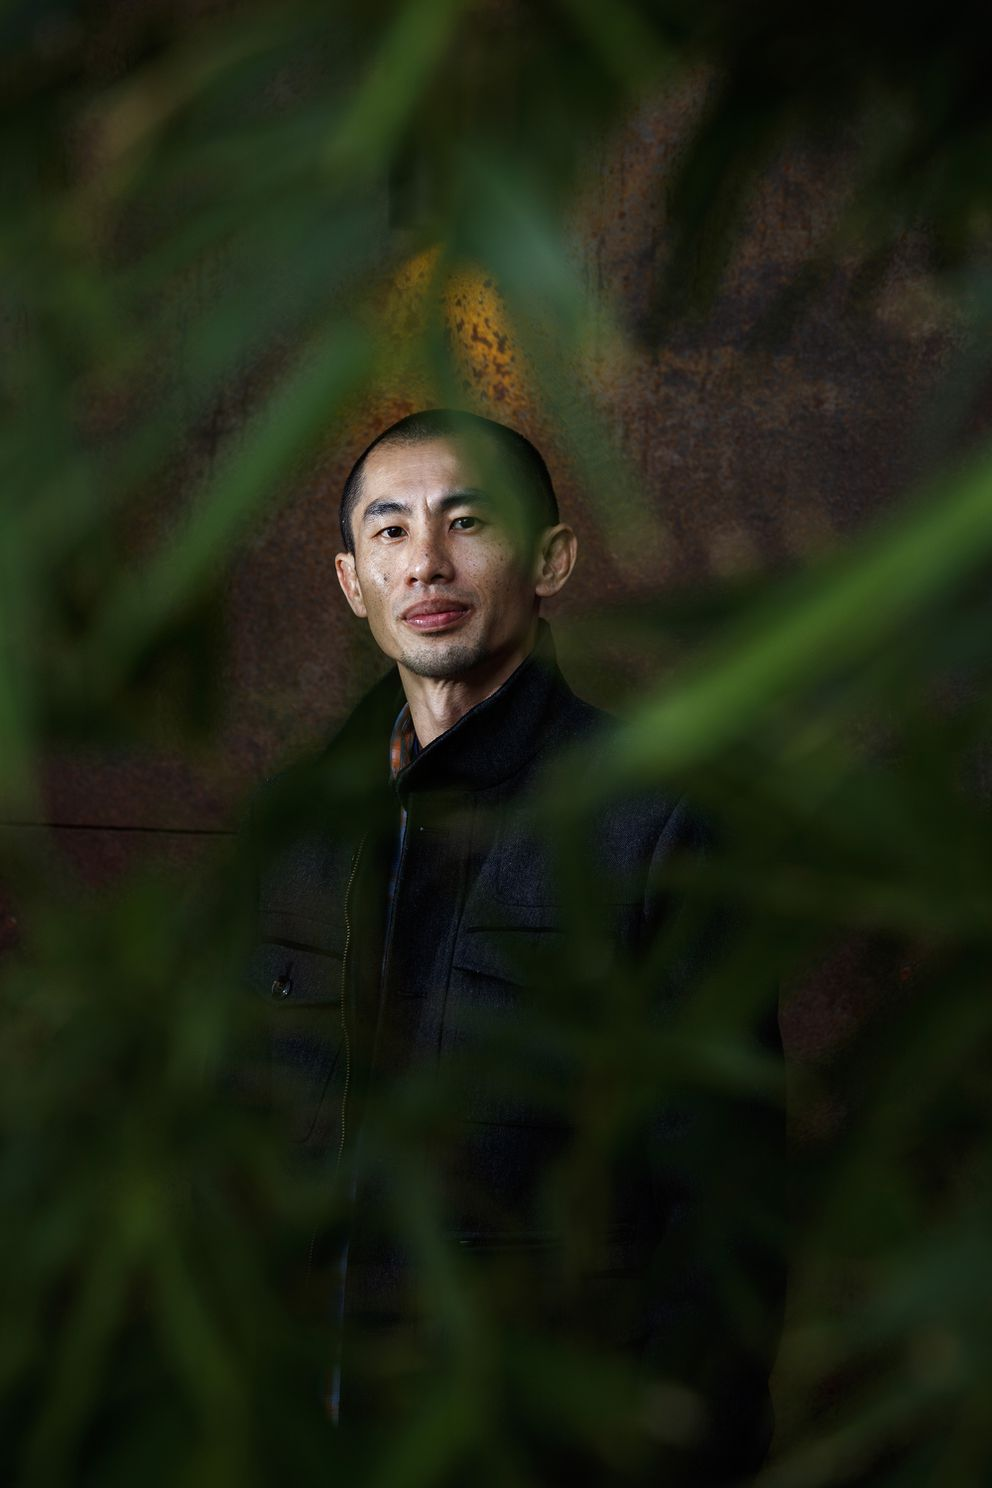 Seibo Shen, founder and CEO of VapeXhale. (Jay L. Clendenin/Los Angeles Times/TNS)